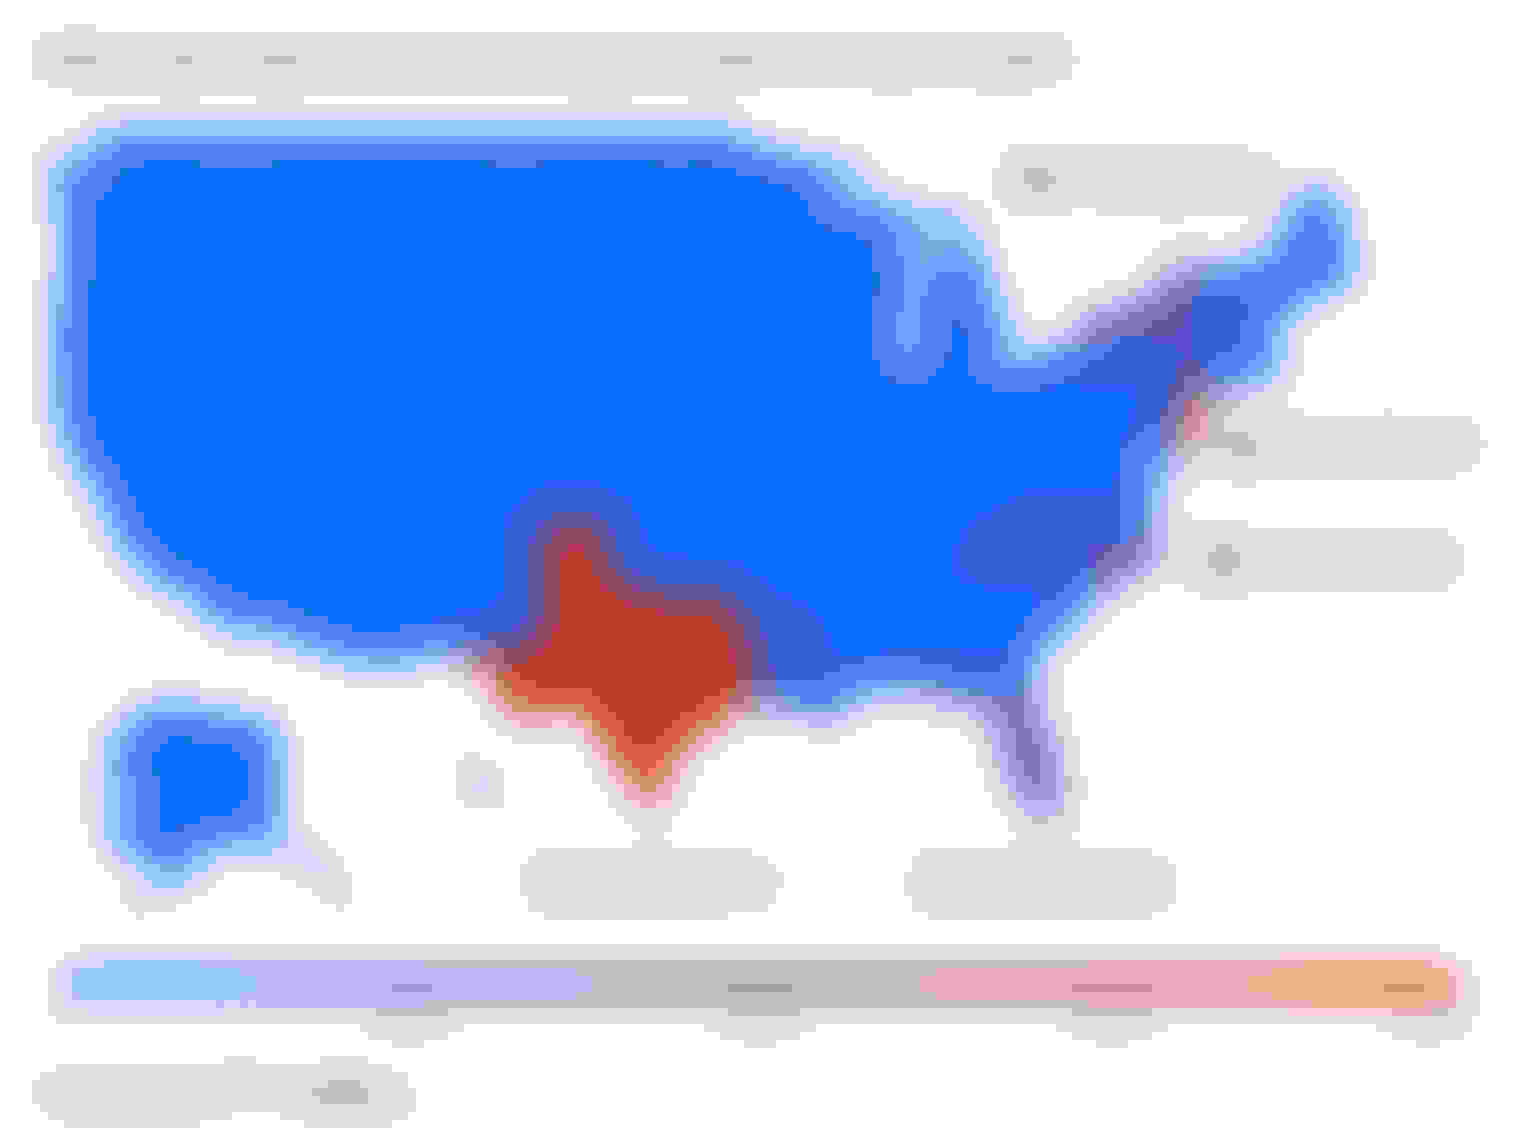 A heatmap showing where noncompliant claims originated